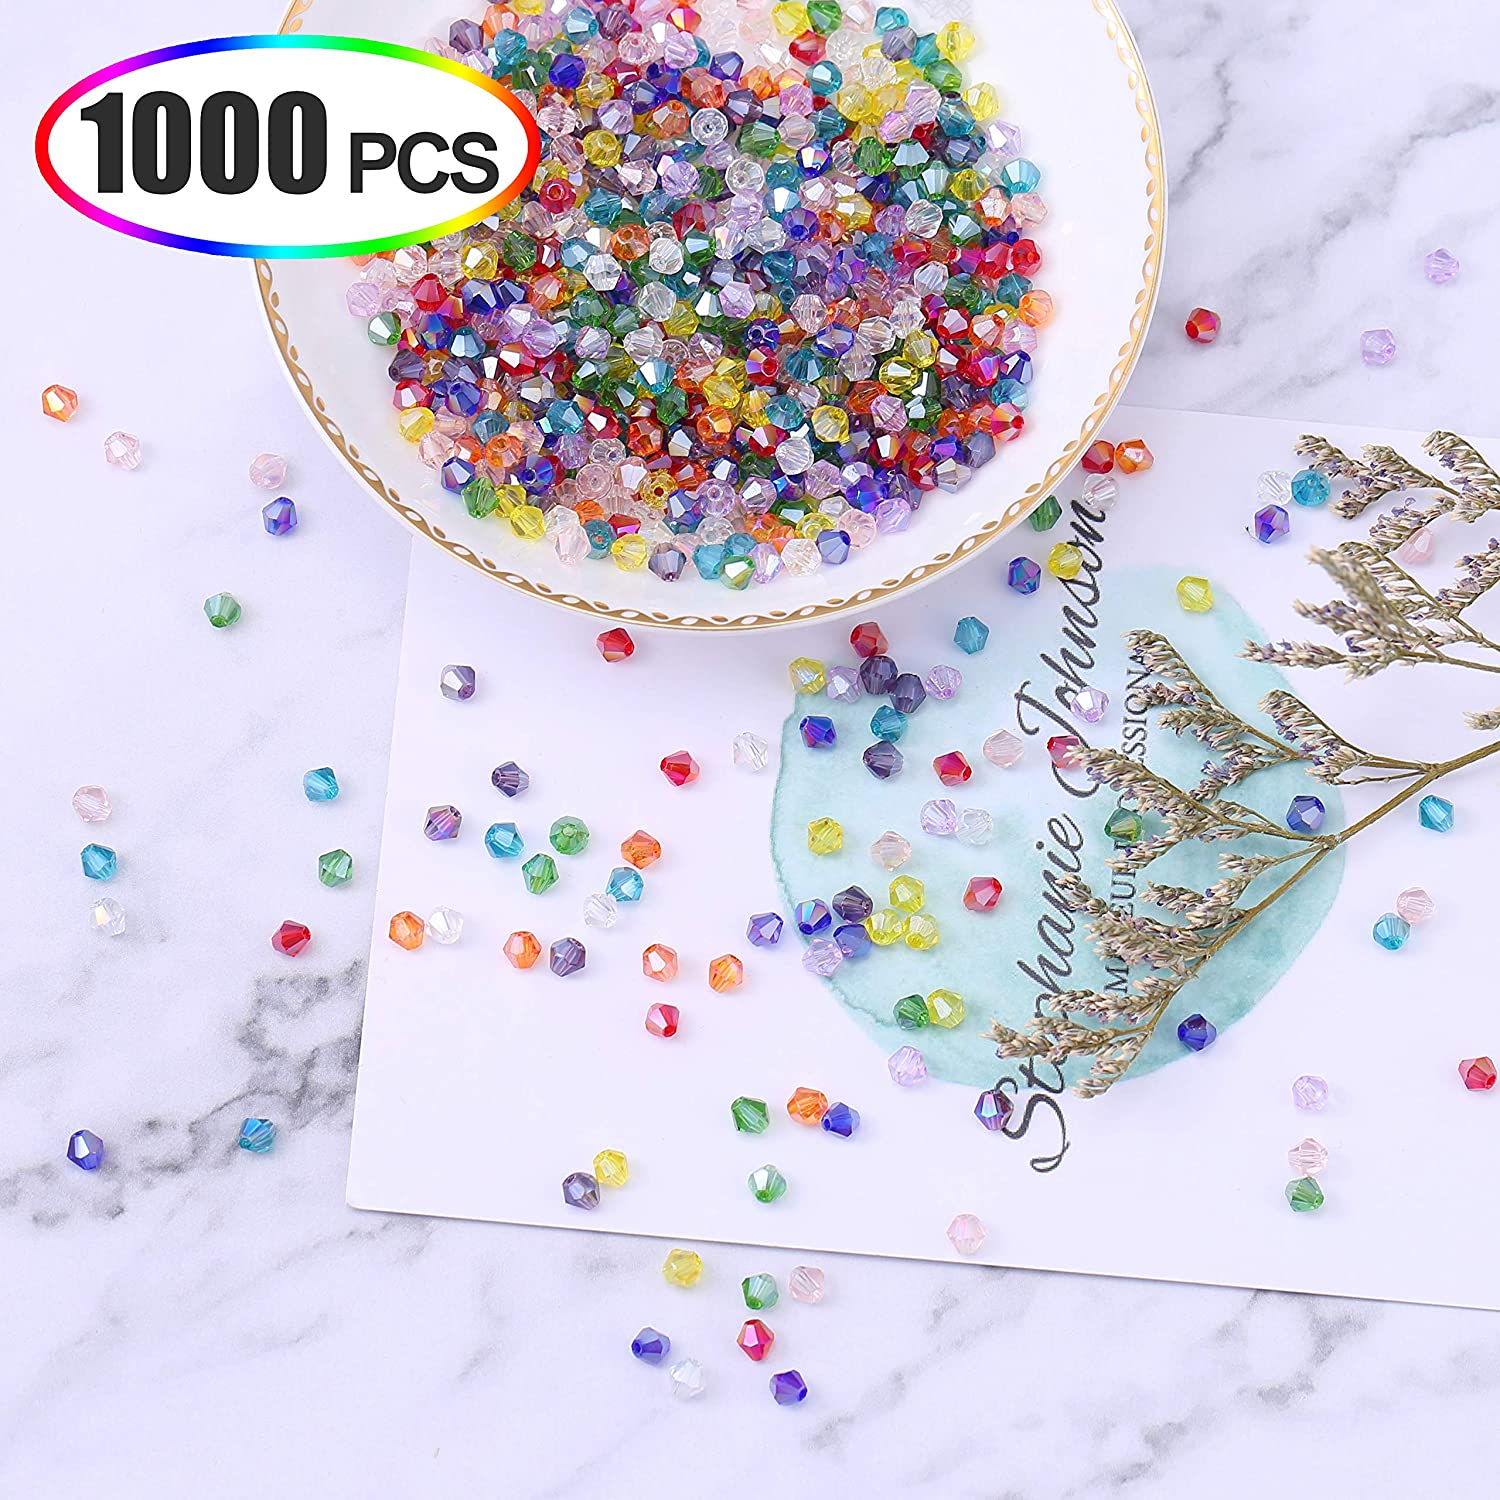 1000pcs 4mm Bicone Crystal Glass Loose Spacer Beads Jewelry Making Wholesale